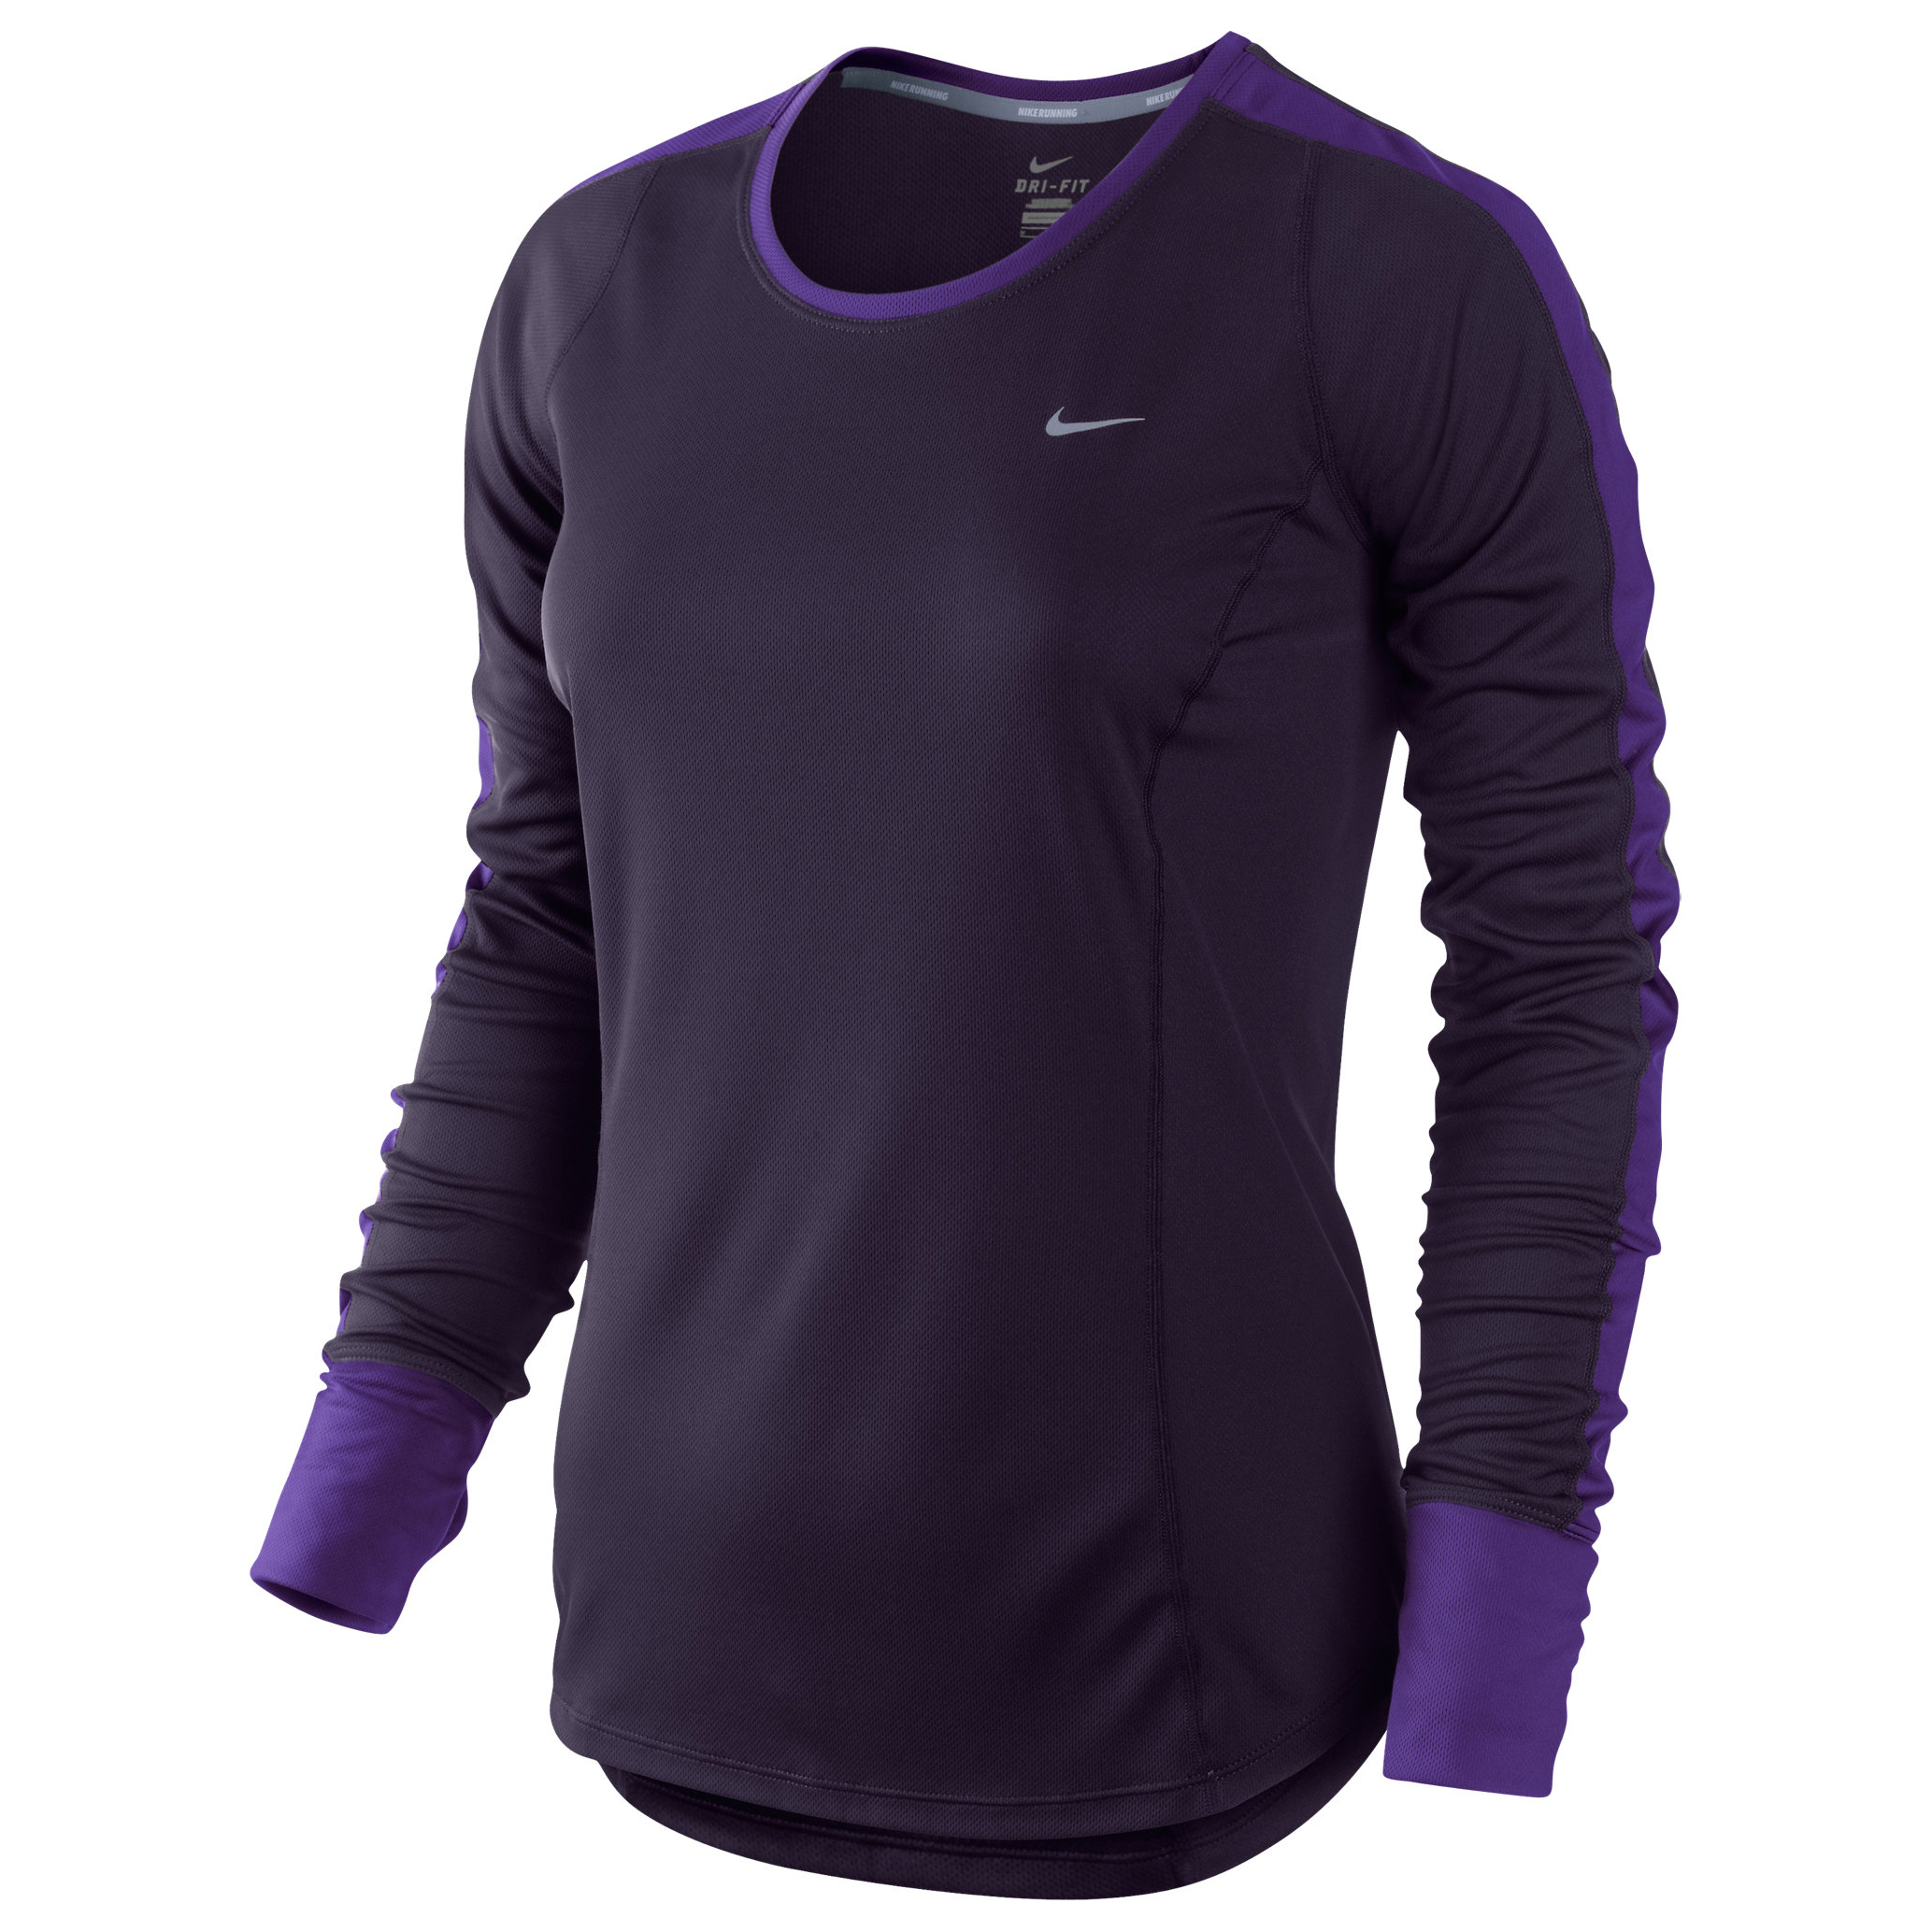 Nike Racer LS T-Shirt - Womens Purple